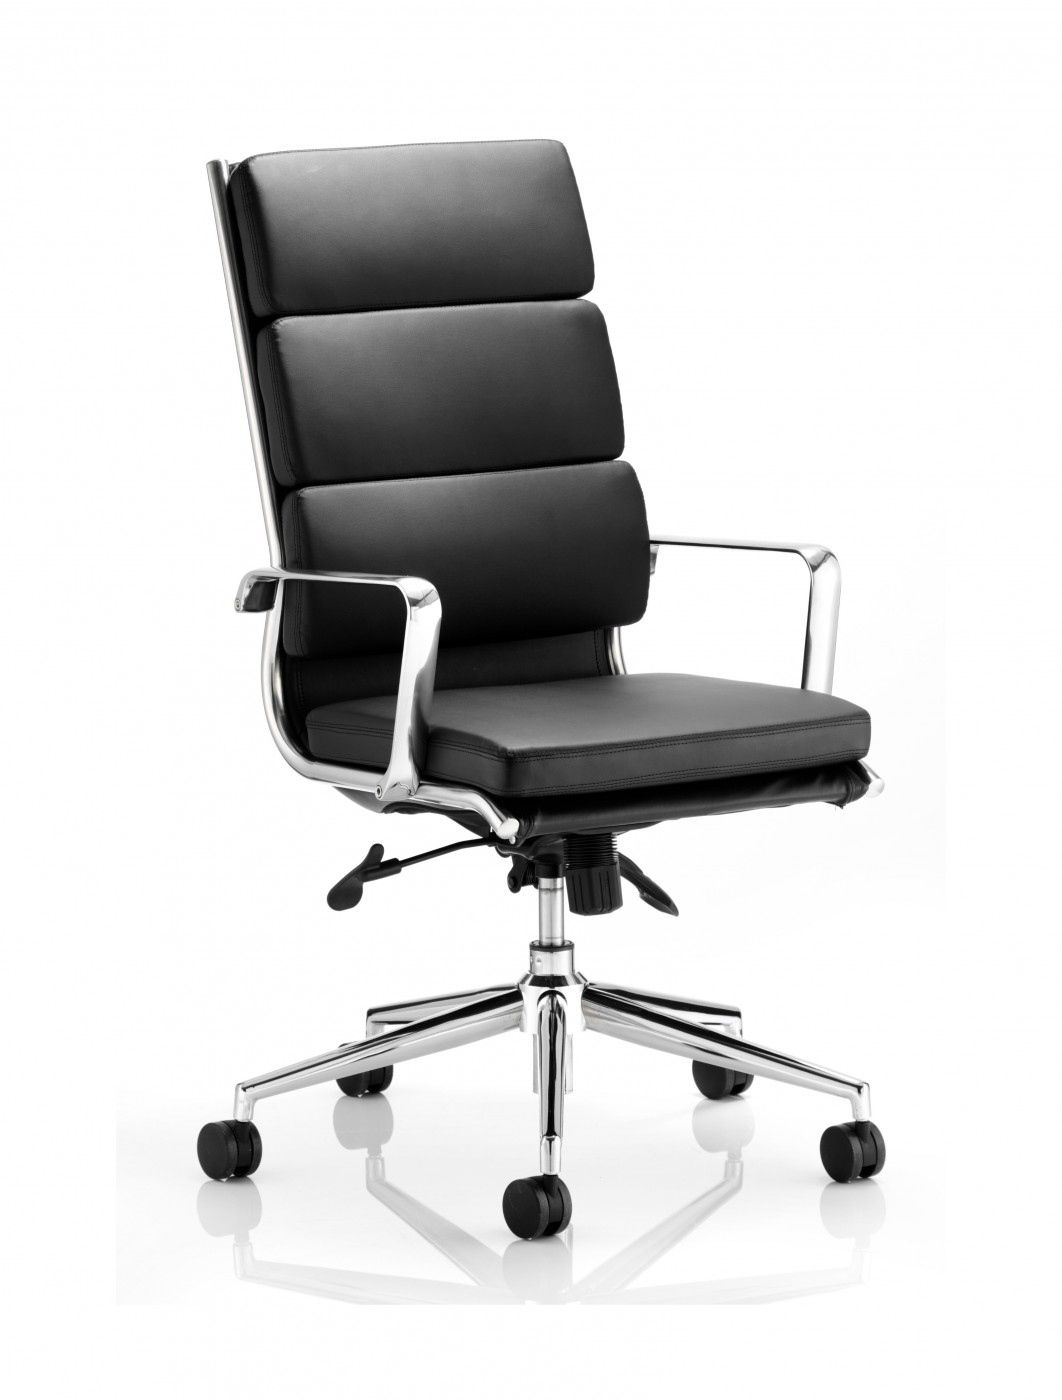 2018 Black Leather Executive Chair - Rustic Home Office Furniture ...